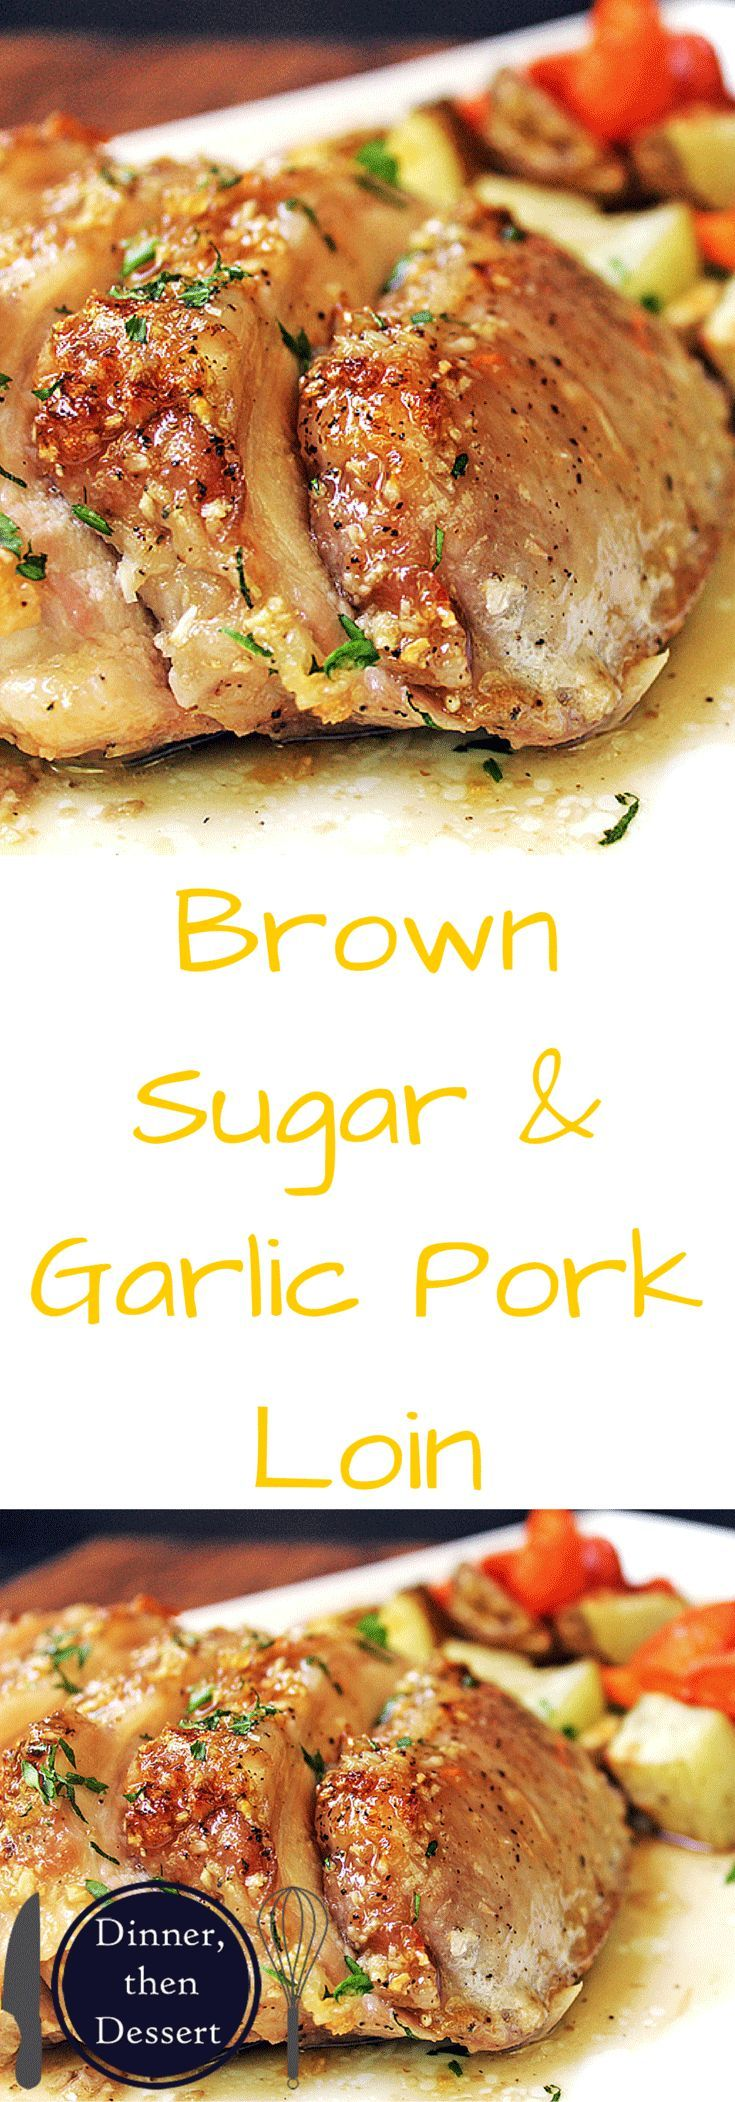 Sticky and Sweet with a punch of garlic, this pork loin is sure to be a huge hit with your family. Serve it up with some roasted carrots and potatoes on the side for a healthy balanced meal!!